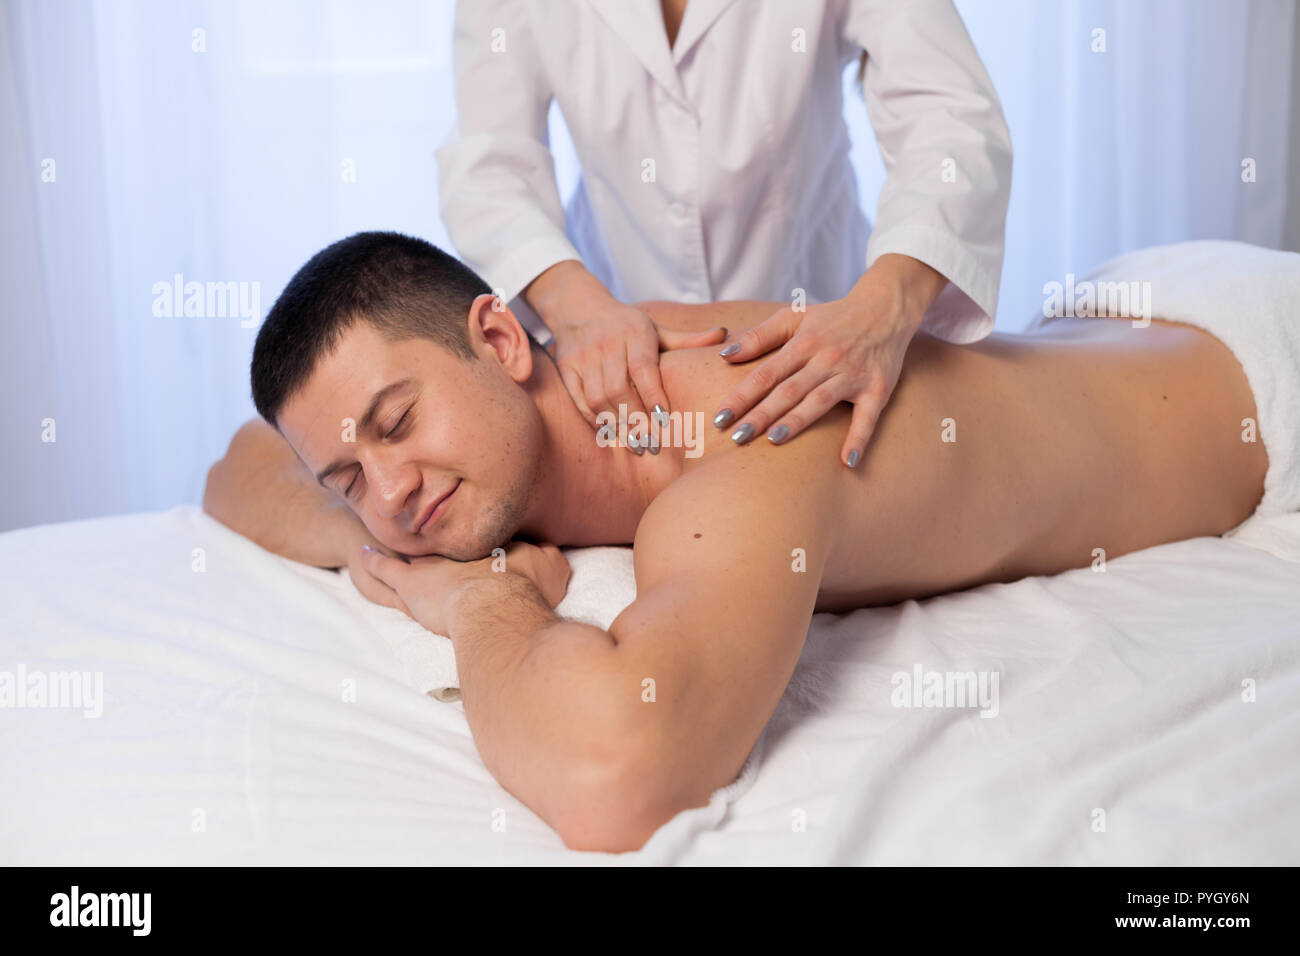 man doing medical massage hands person in Spa - Stock Image